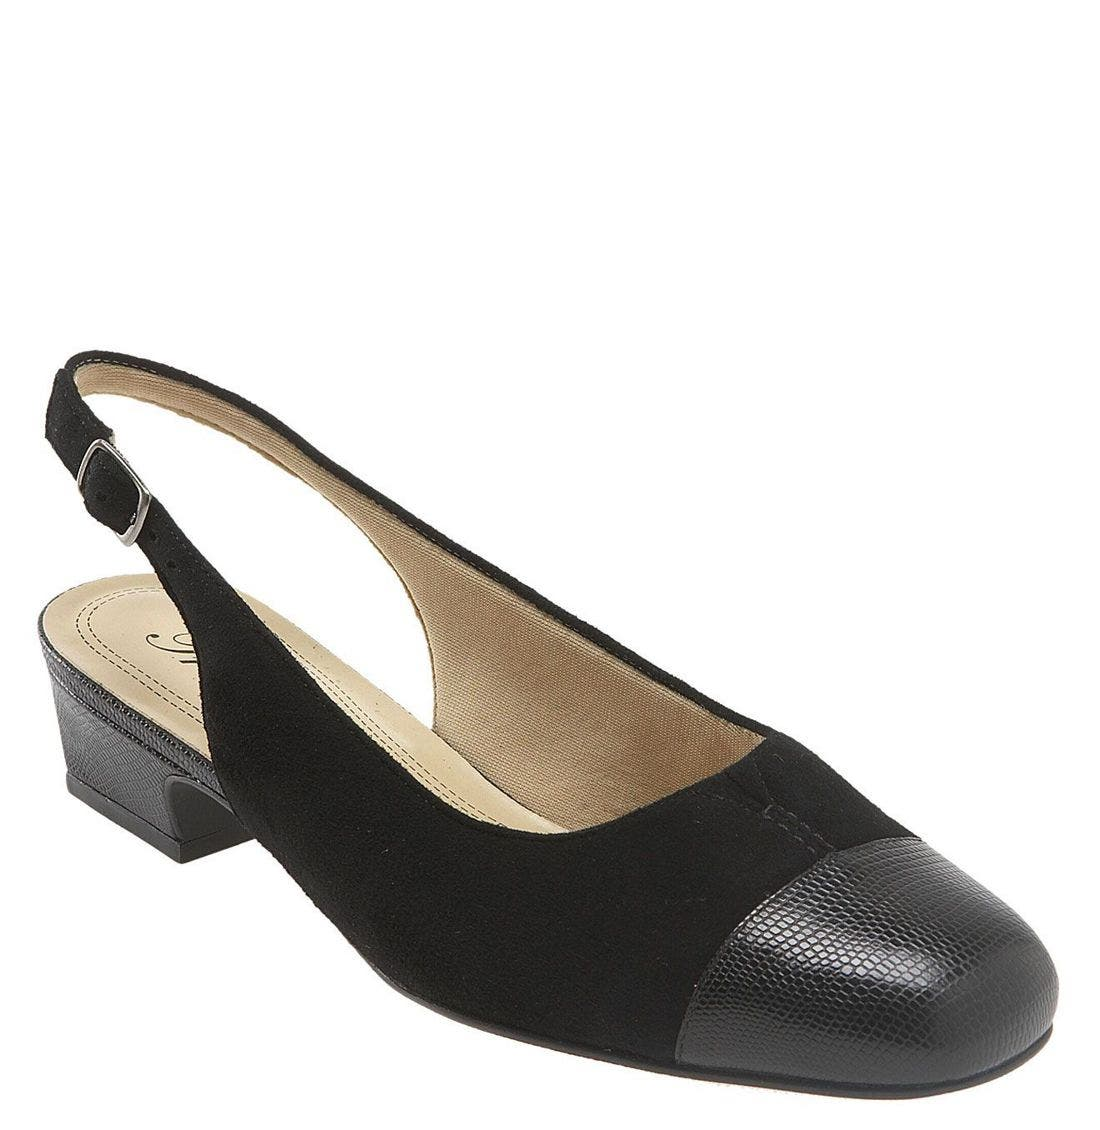 'Dea' Slingback,                         Main,                         color, BLACK LEATHER